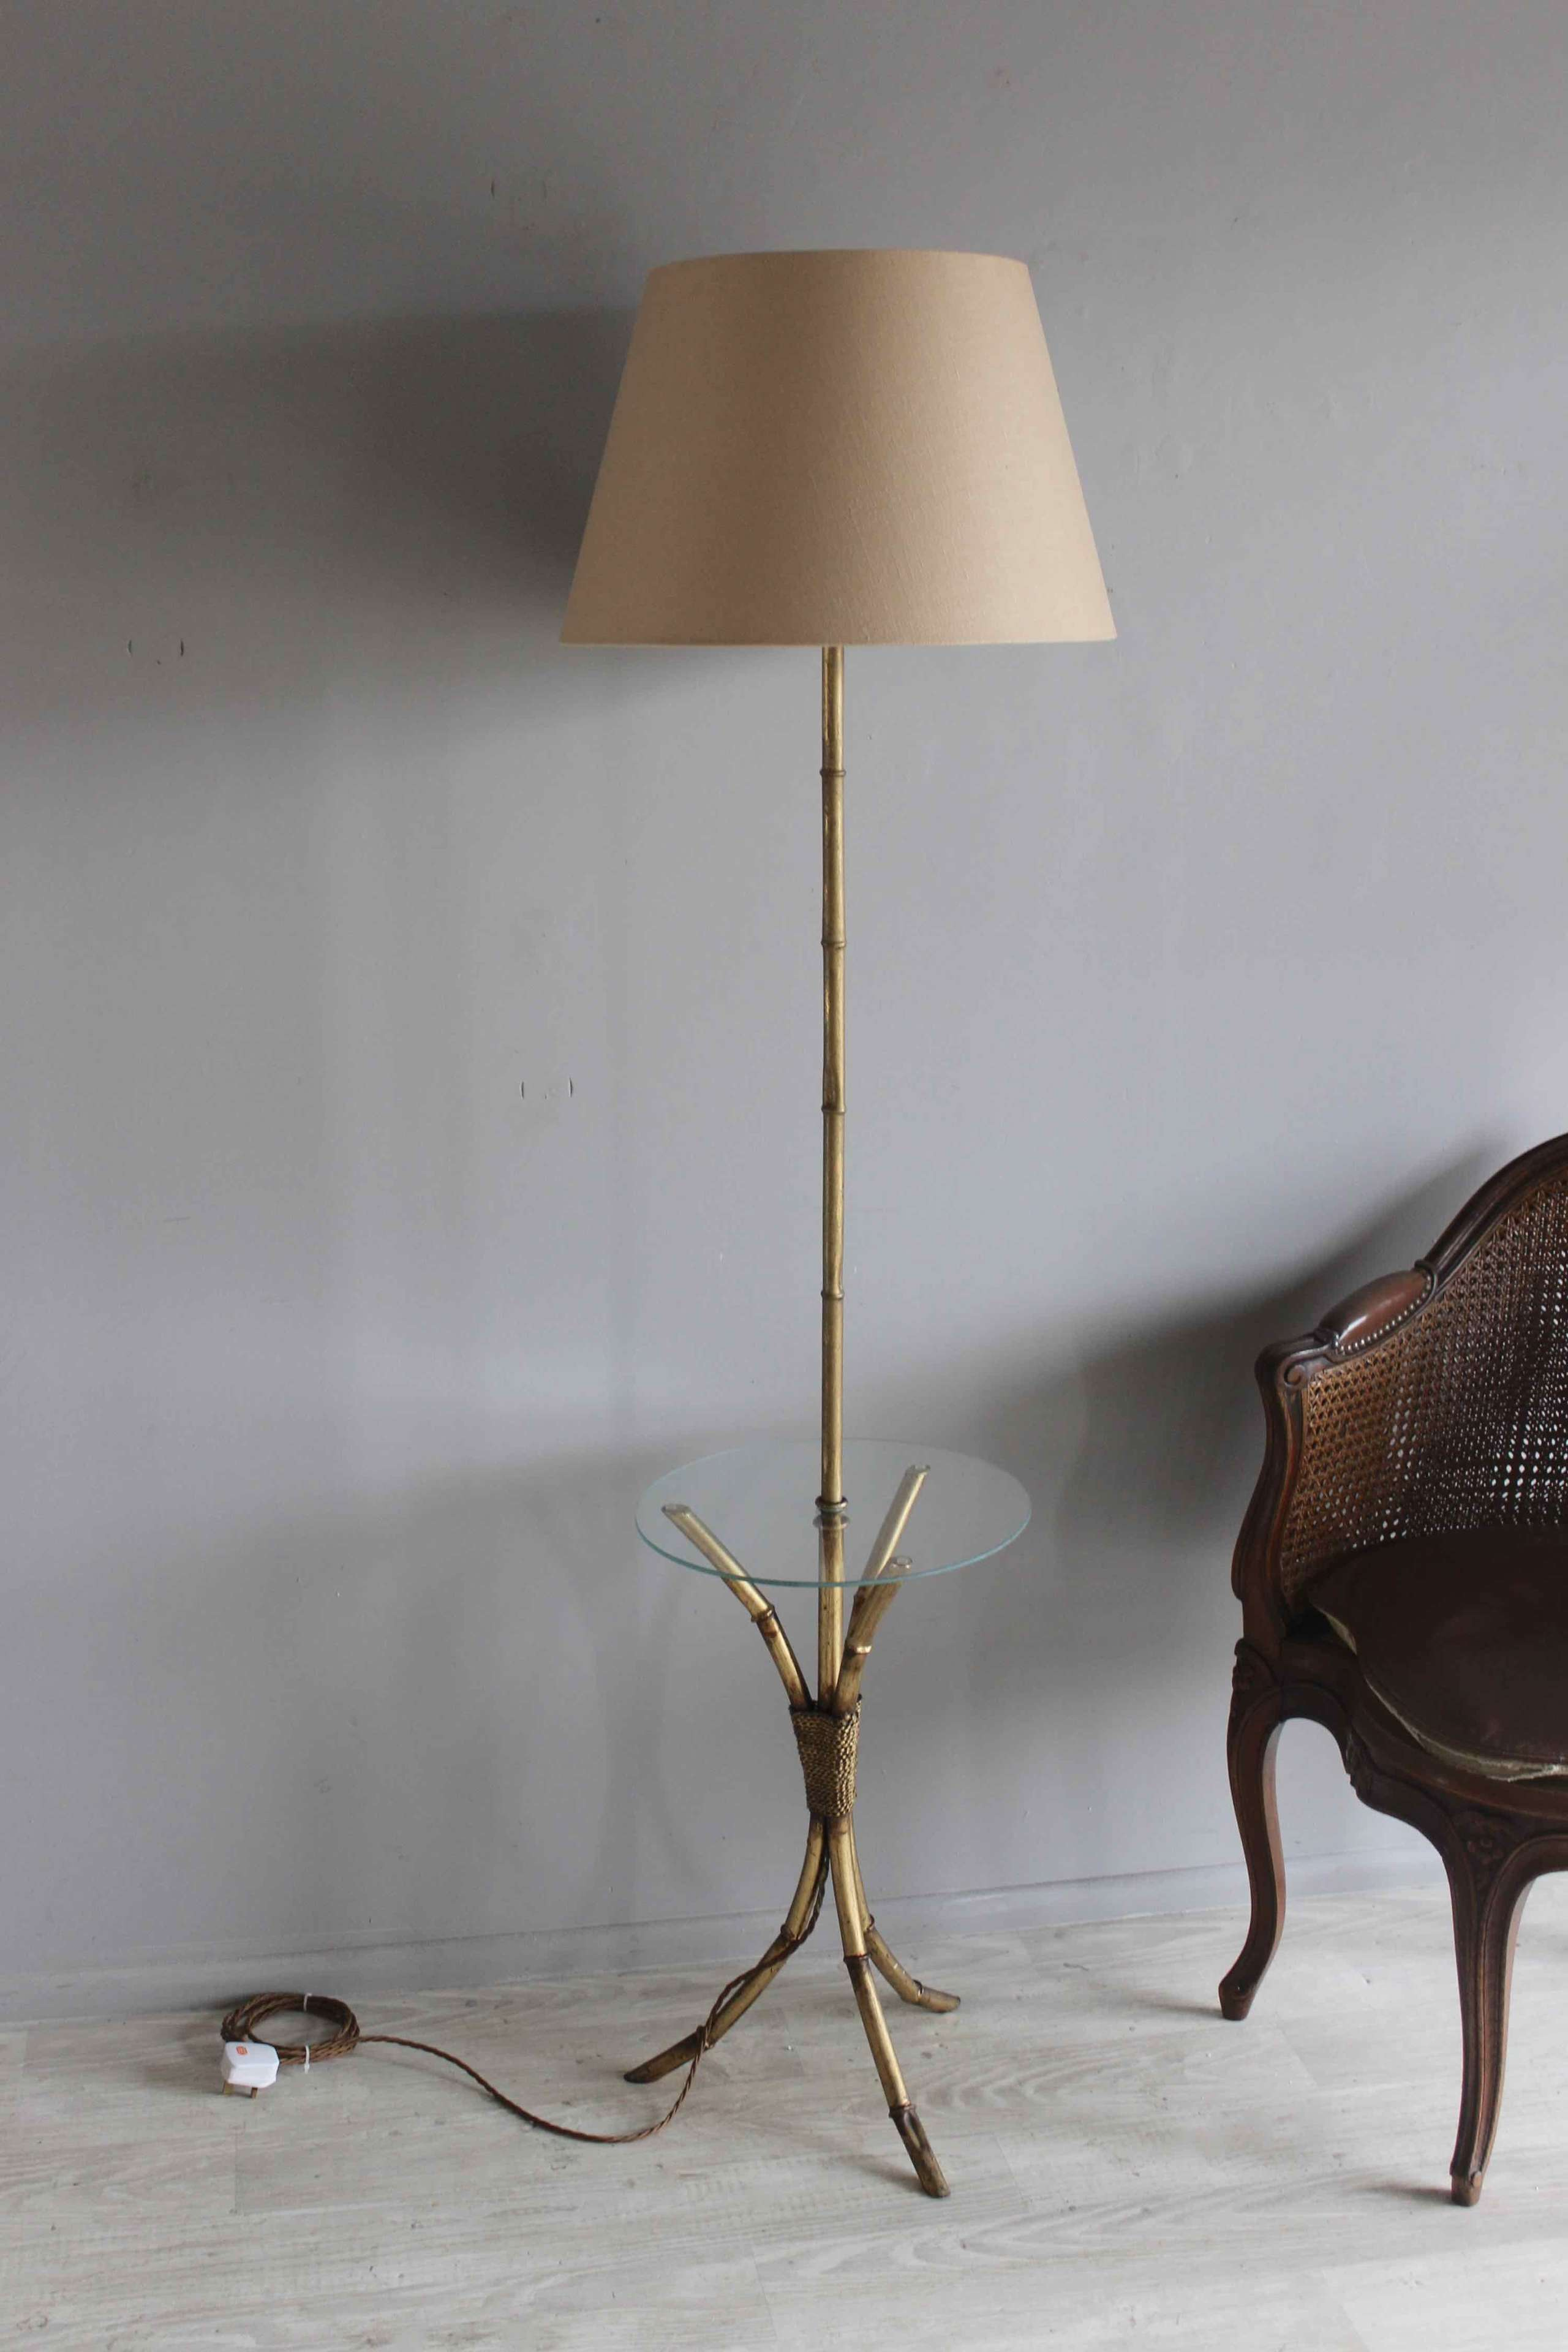 Bamboo style gilt metal floor lamp with cocktail table